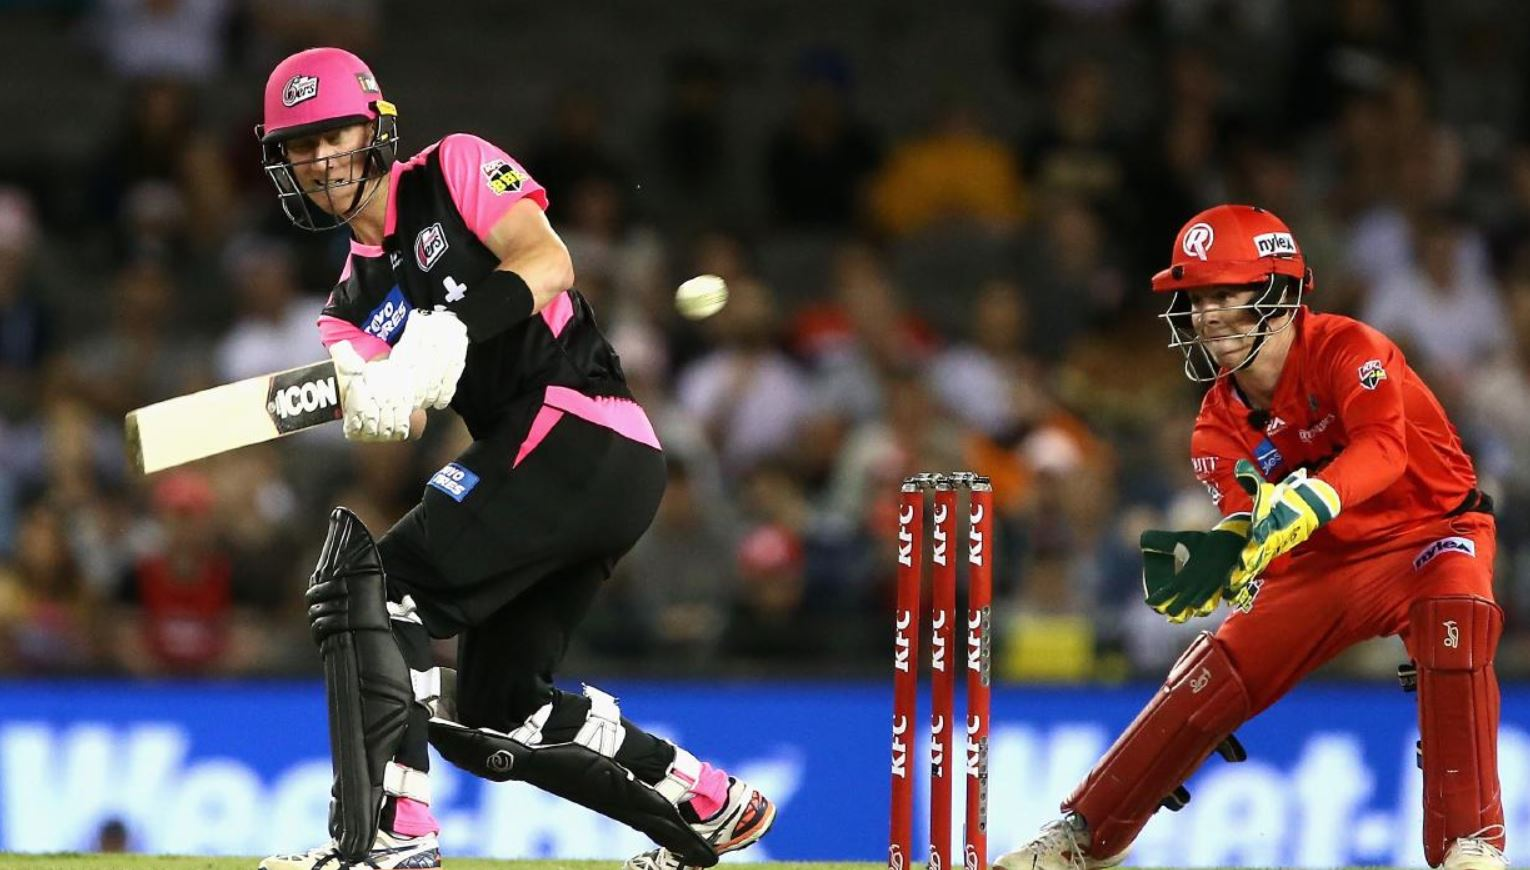 BBL09 Fantasy Tips: Sixers vs Renegades